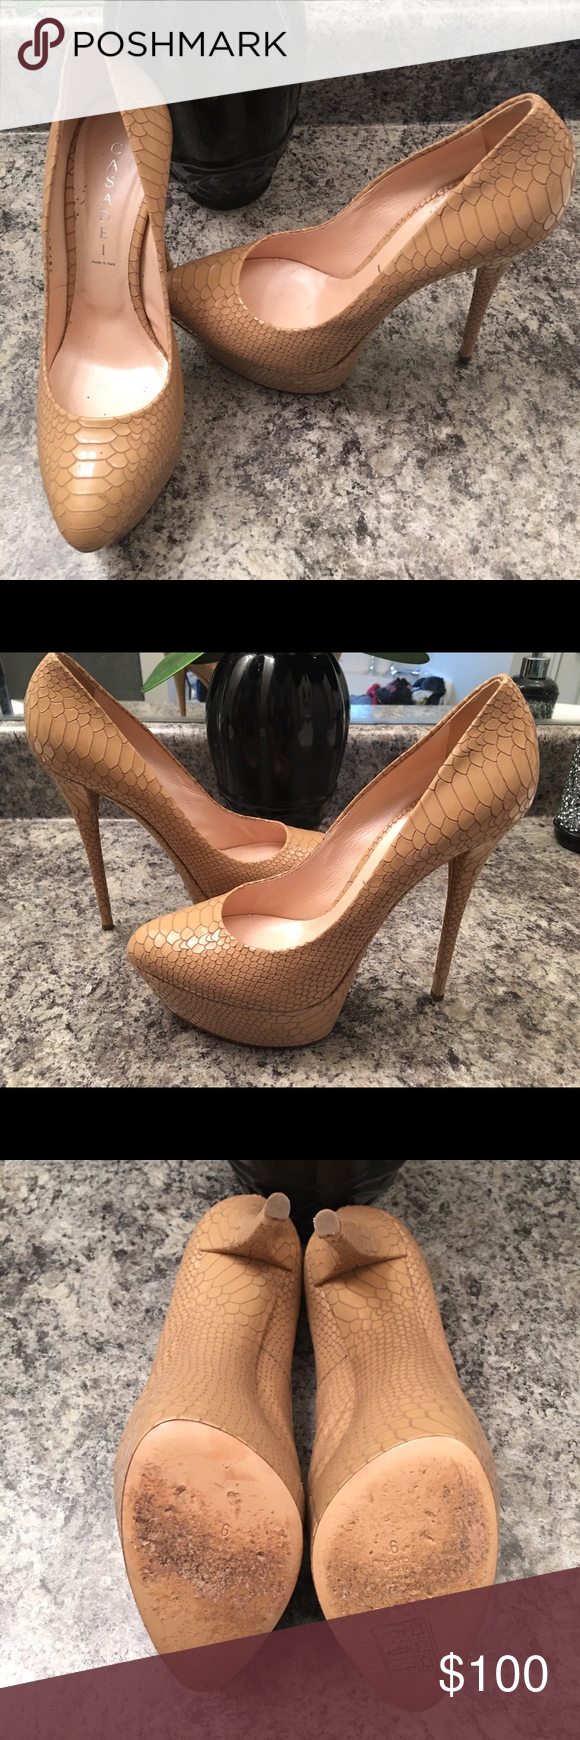 Casadei heel Work twice; great condition; about a 5 to 6 inch heel; it's a size 9 but it's very tight (I'm a true 9). Sexy shoe! Casadei Shoes Heels